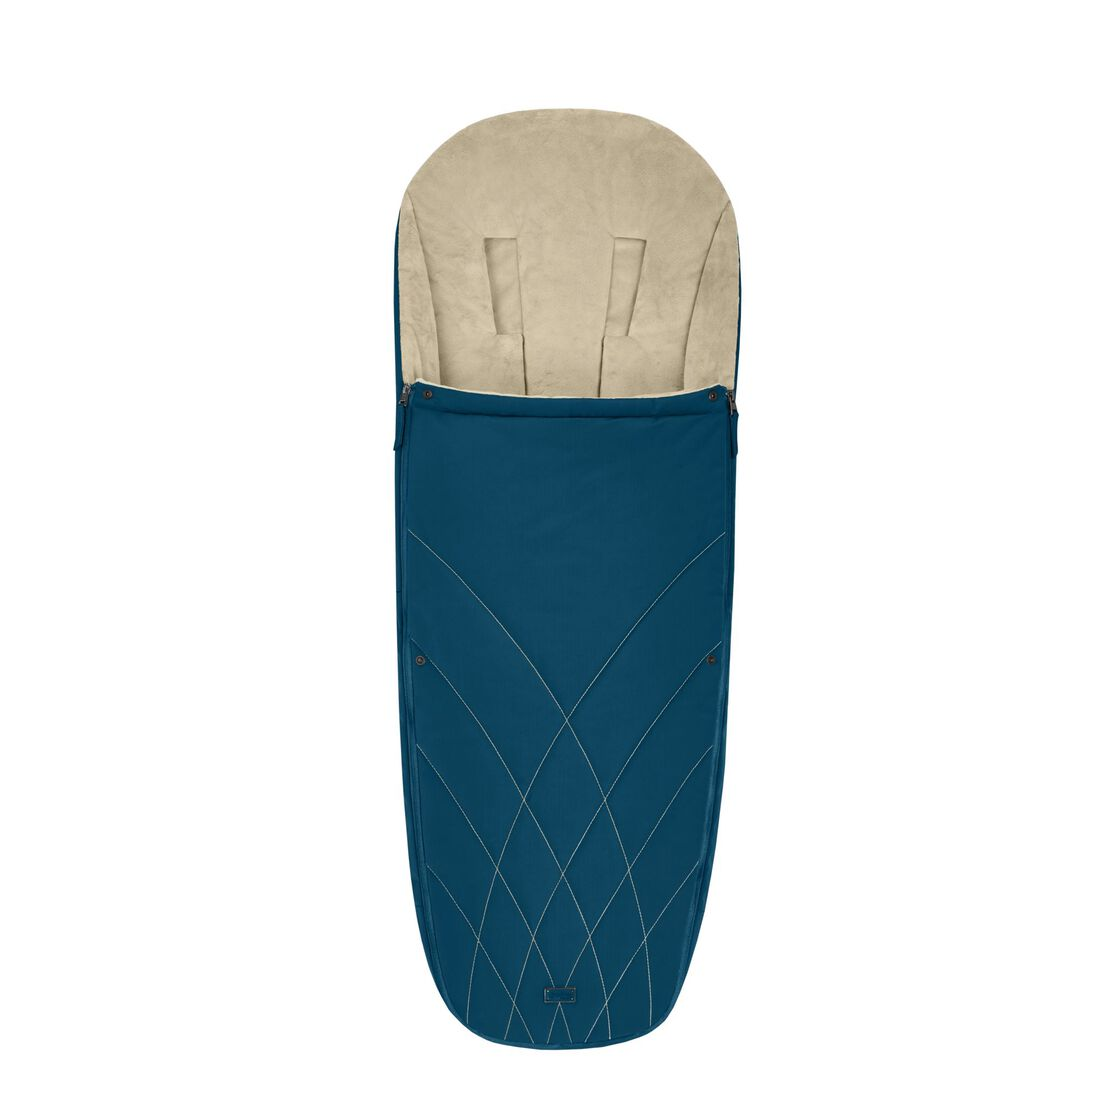 CYBEX Platinum Footmuff - Mountain Blue in Mountain Blue large image number 1